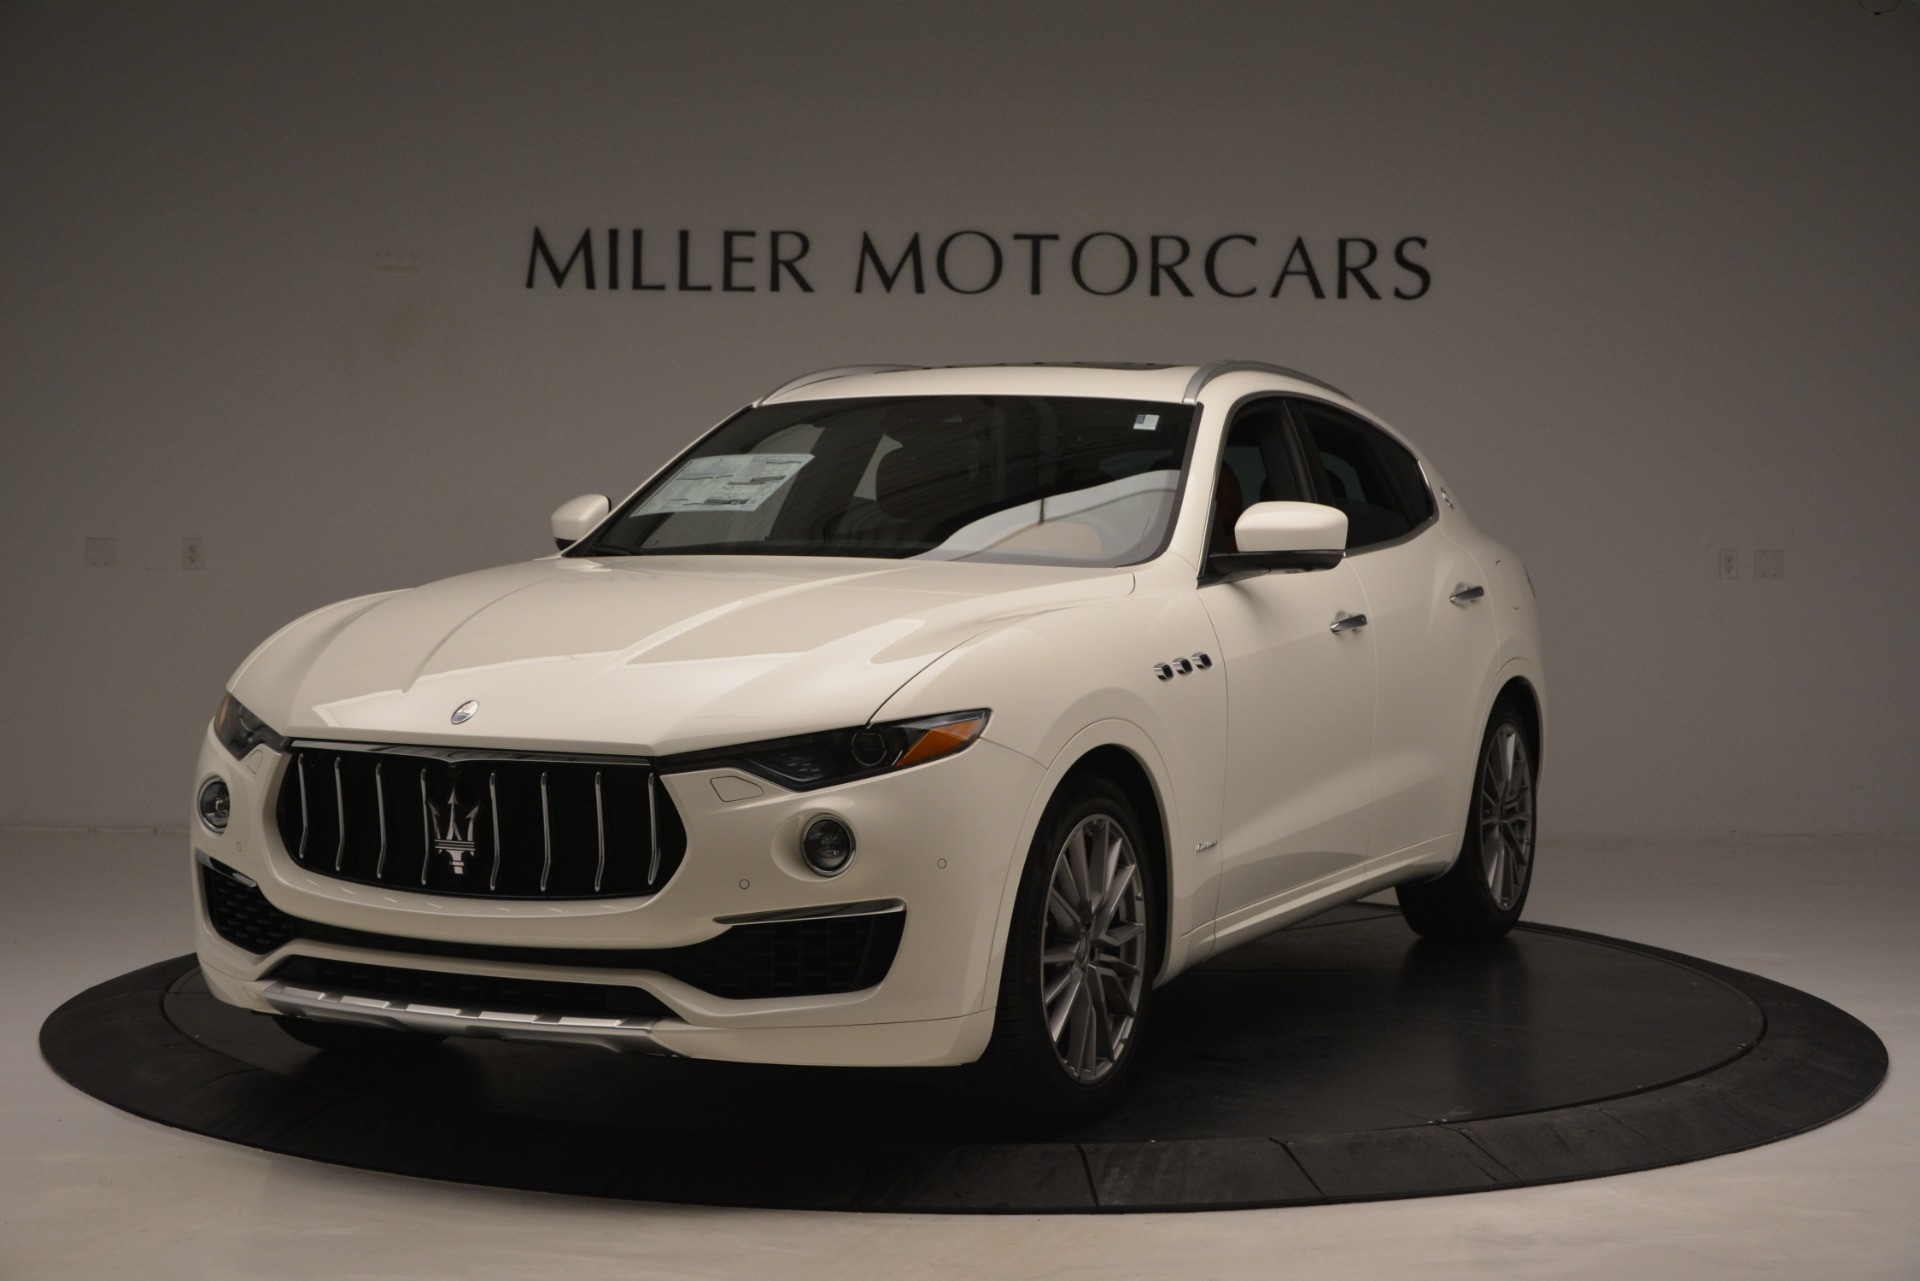 New 2019 Maserati Levante Q4 GranLusso for sale Sold at Bentley Greenwich in Greenwich CT 06830 1